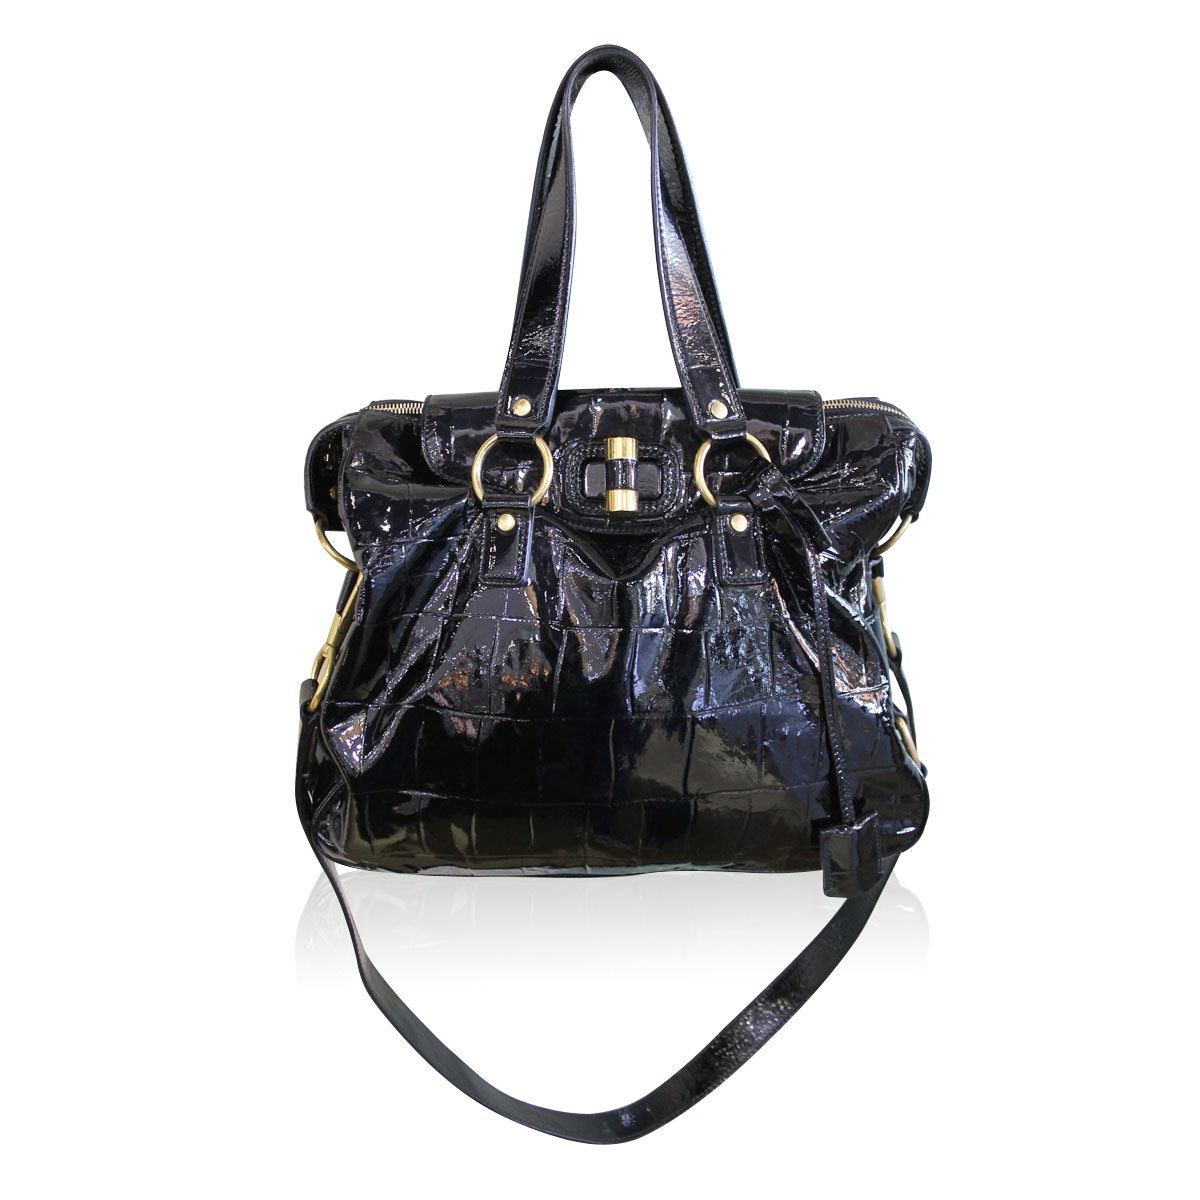 Ysl Yves Saint Laurent Patent Black Gold Muse Handbag